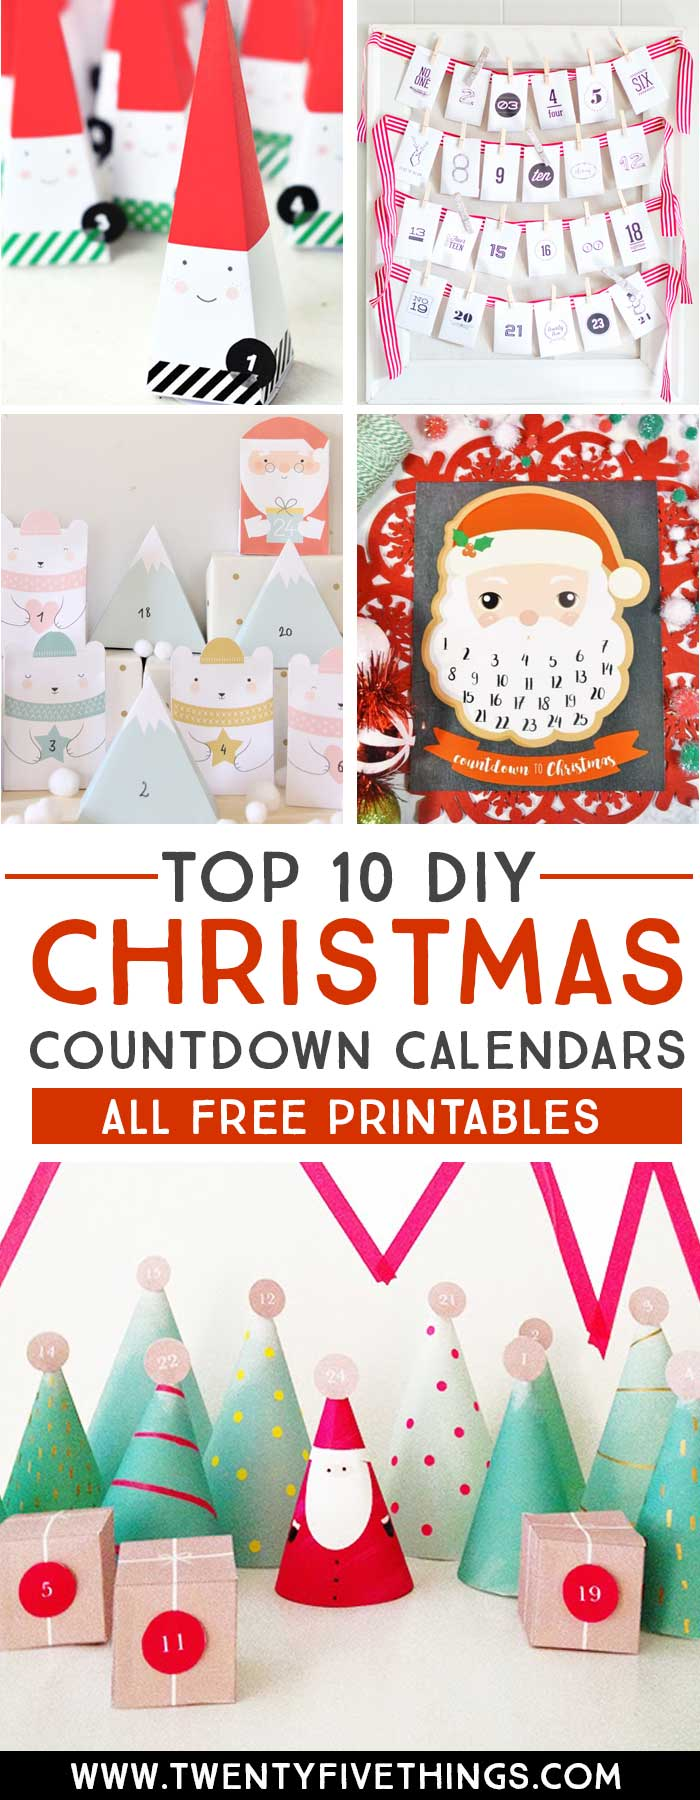 Check out our picks for the top 10 Free printable Christmas countdown advent calendars. All of these are budget friendly and super-easy to create for your own family. Click through to see all 10 DIY printable advent calendar ideas. #ChristmasCountdown #FreePrintables #DIYChristmas #AdventCalendars